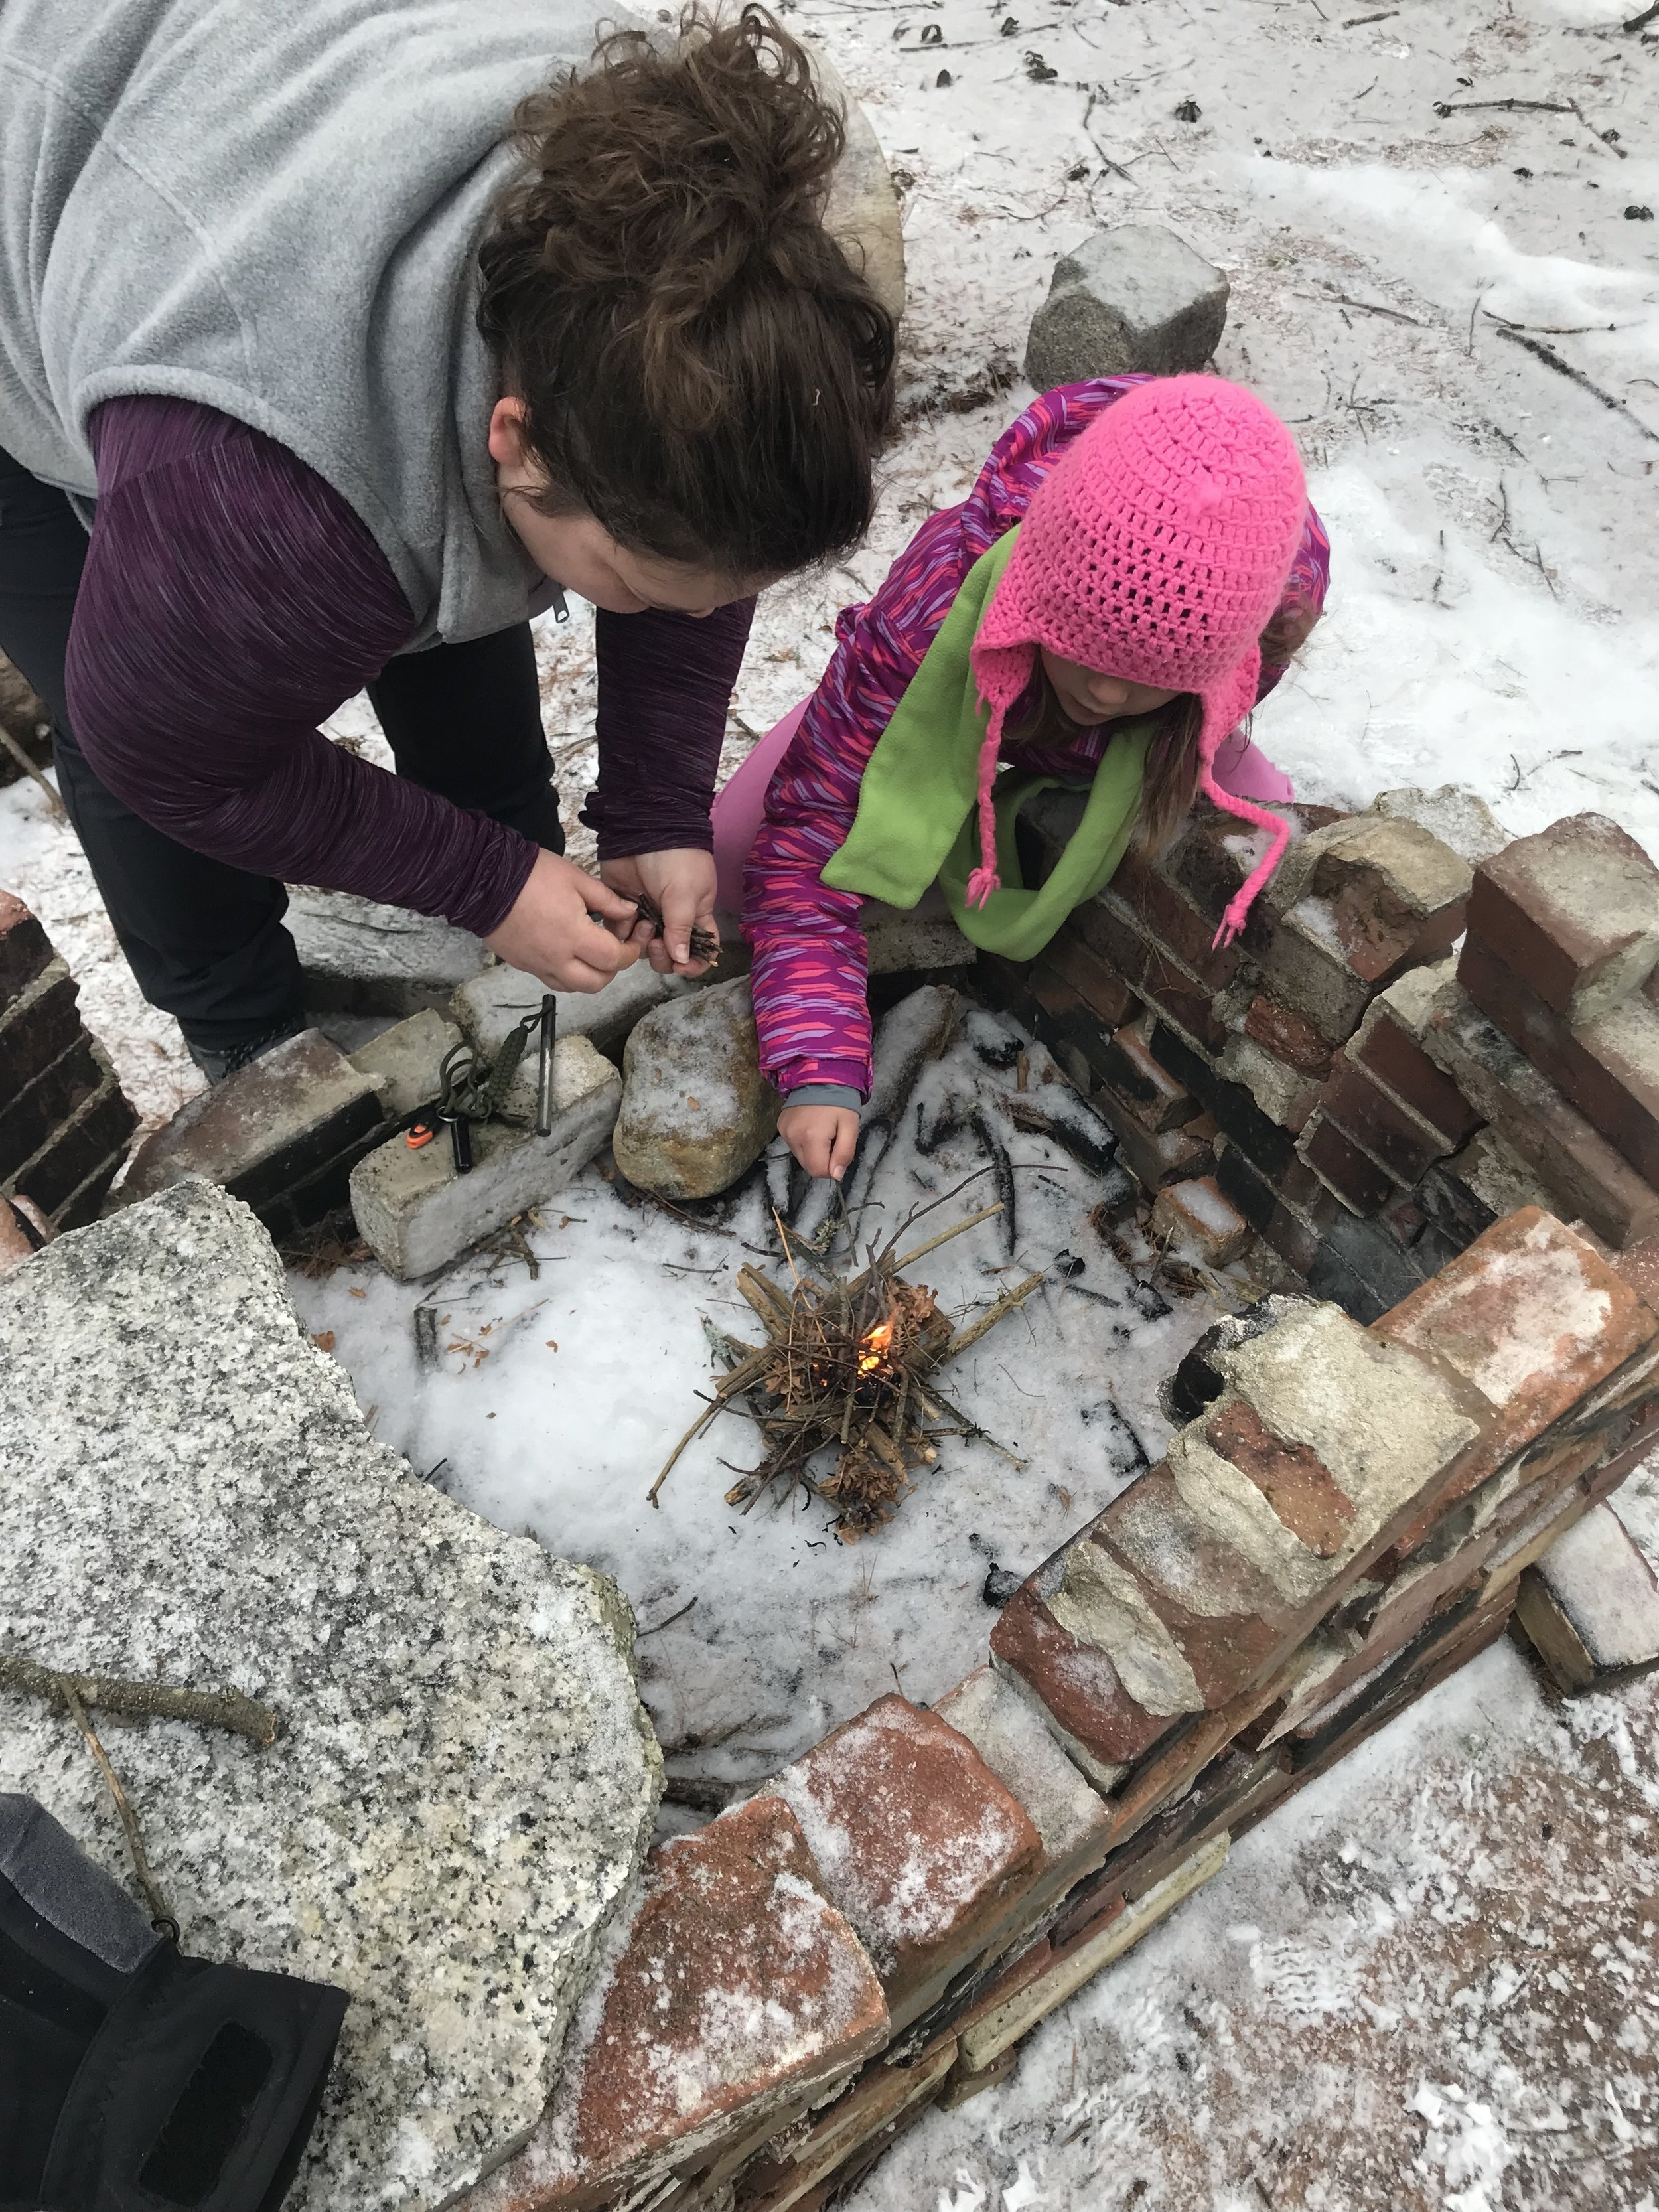 Testing our fire building skills in an abandoned fireplace.